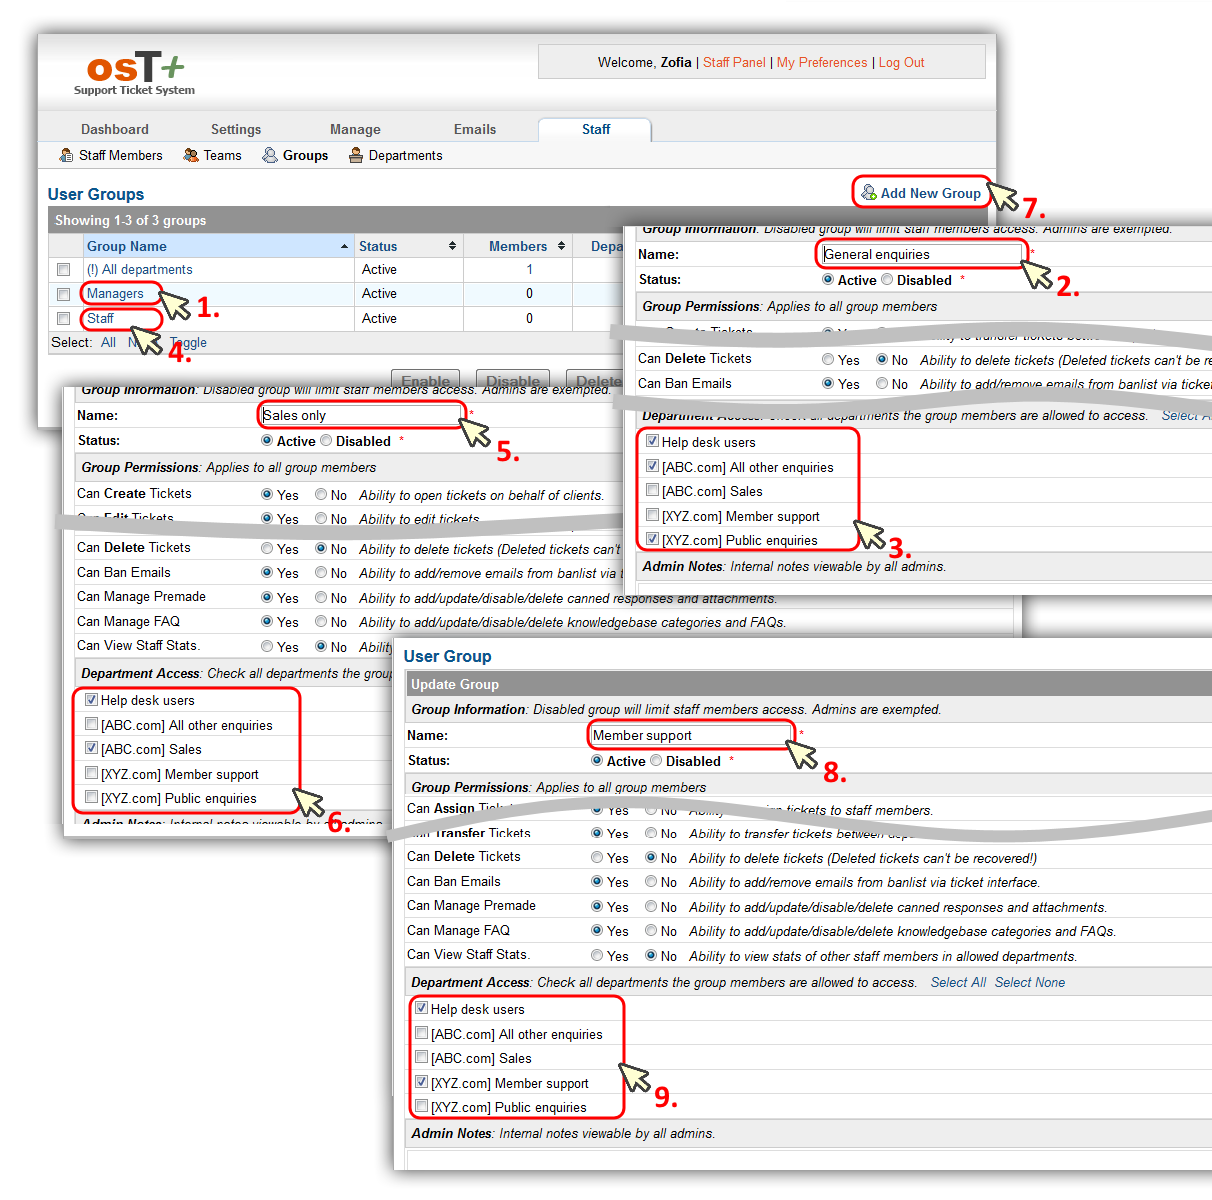 osT+ configuration – assigning department access to each group